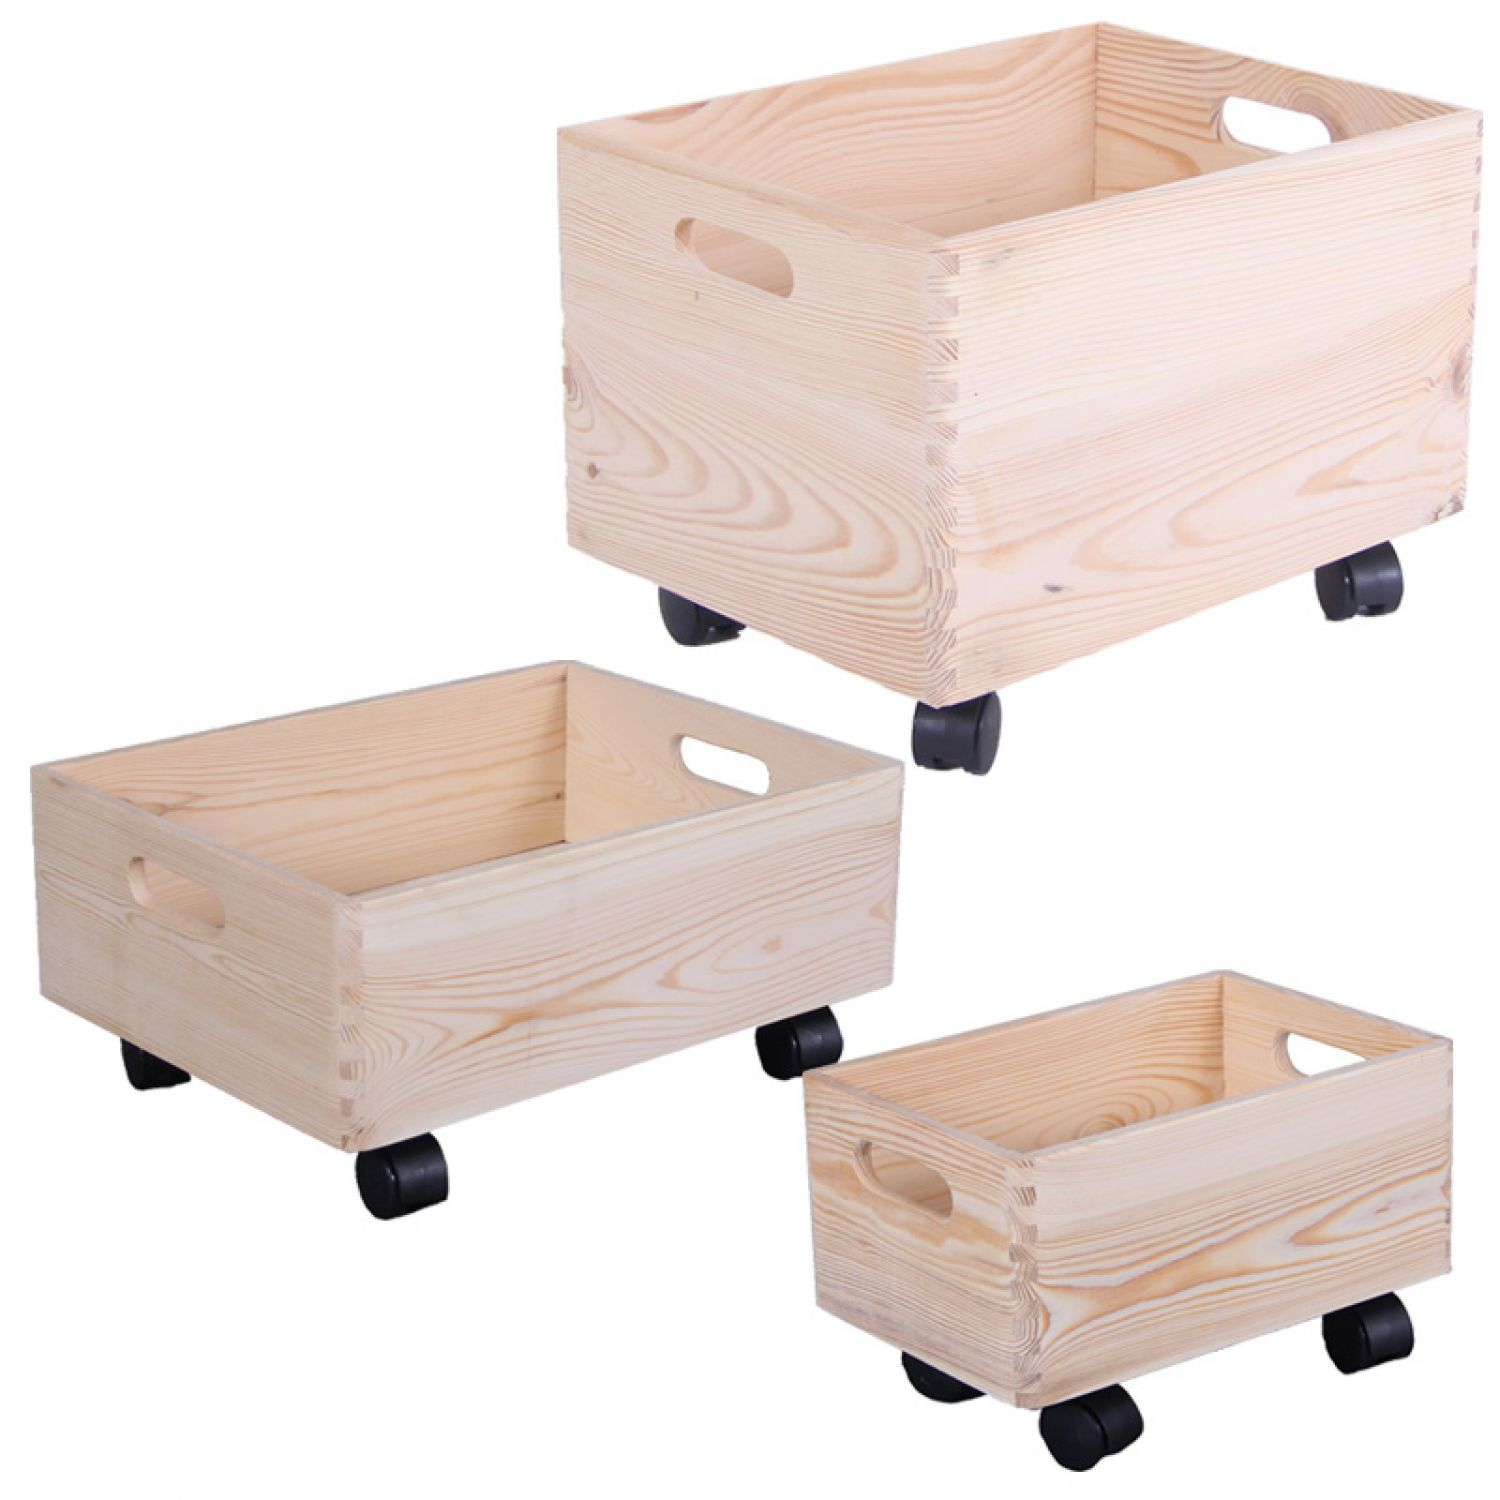 holzkiste auf rollen aufbewahrungsbox holz kinderzimmer. Black Bedroom Furniture Sets. Home Design Ideas